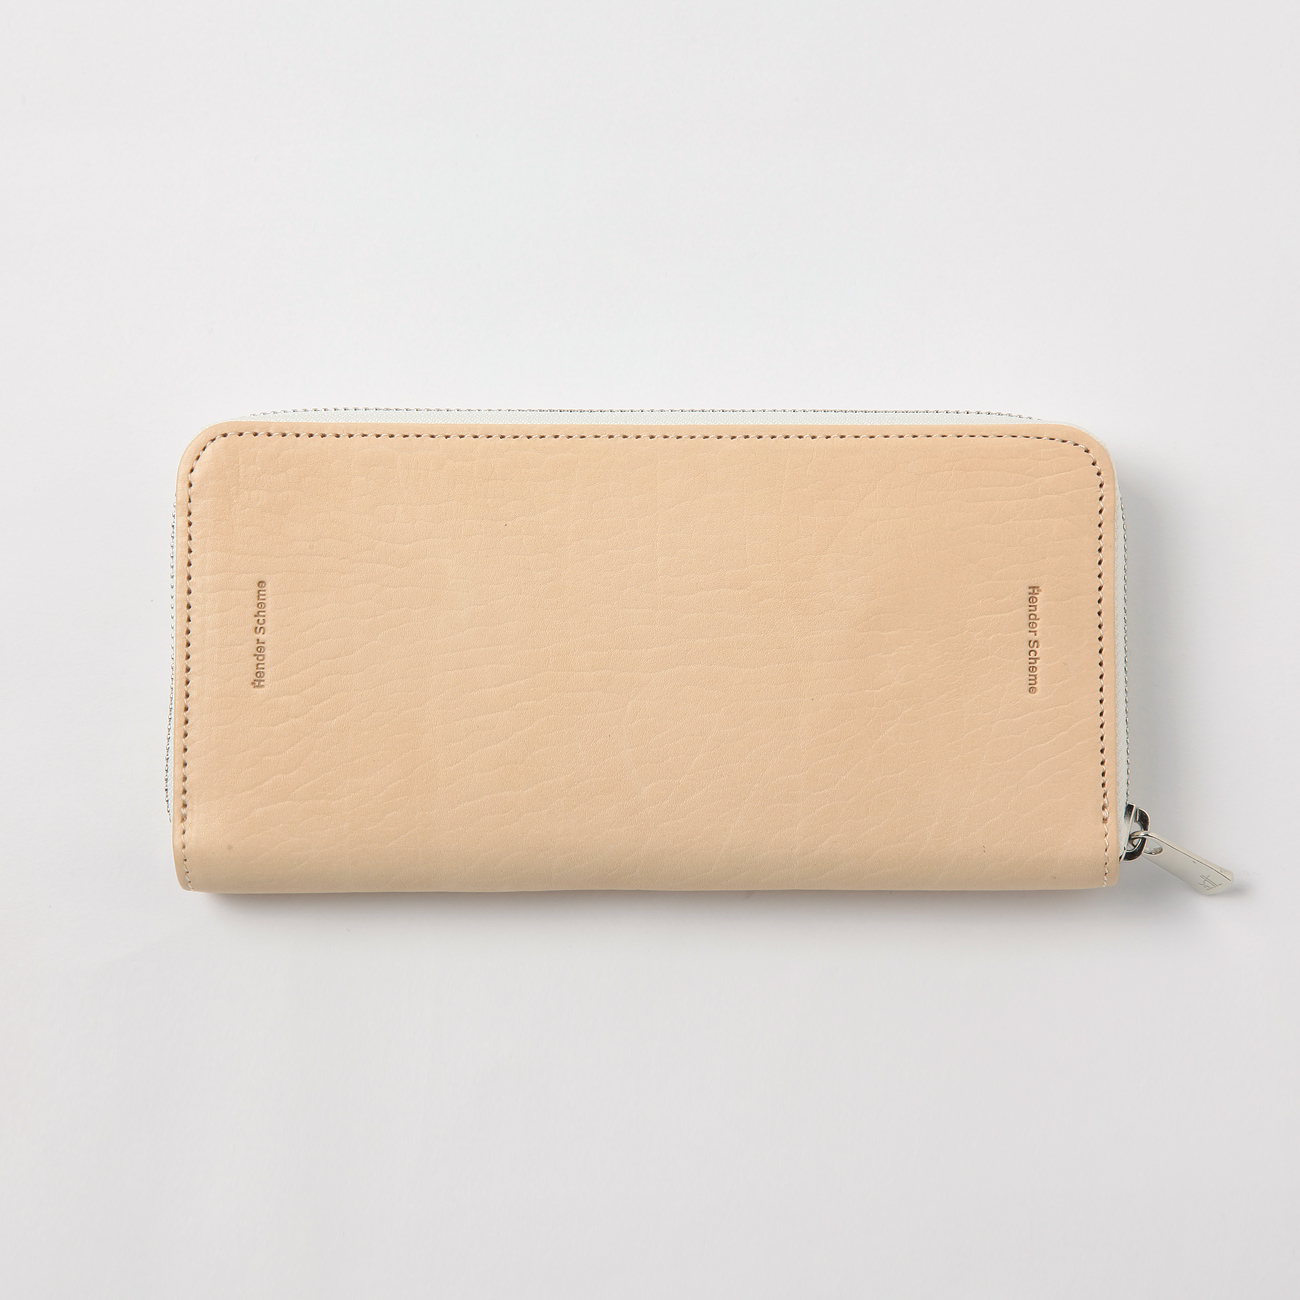 Hender Scheme - long zip purse - Natural